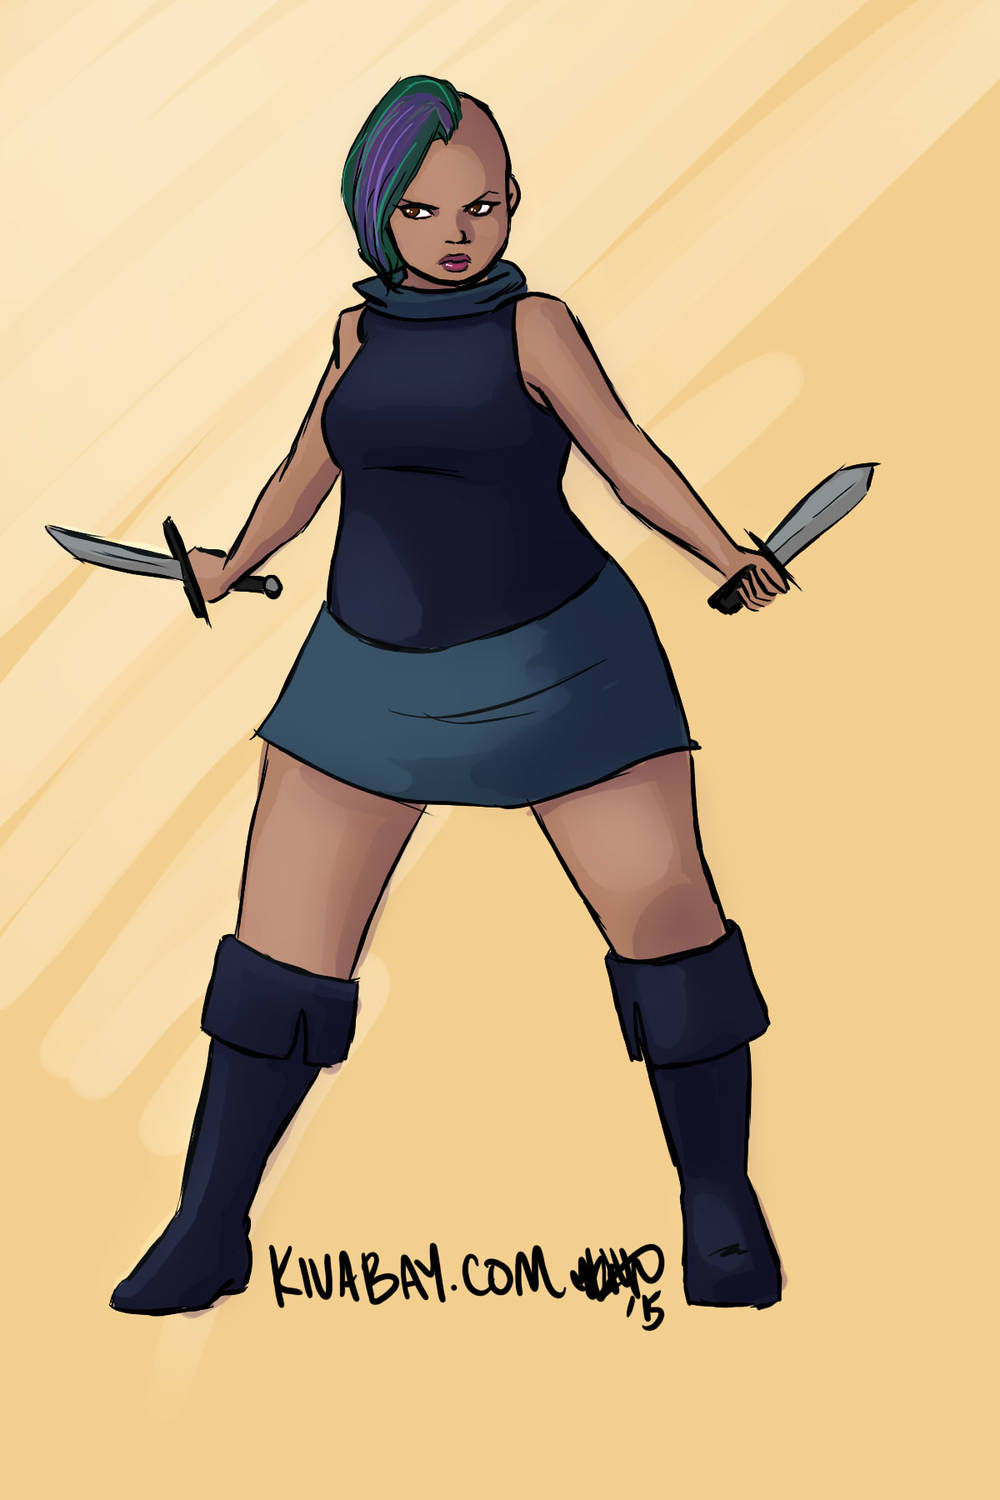 Bianca J Anderson as a rogue for #feministdeck